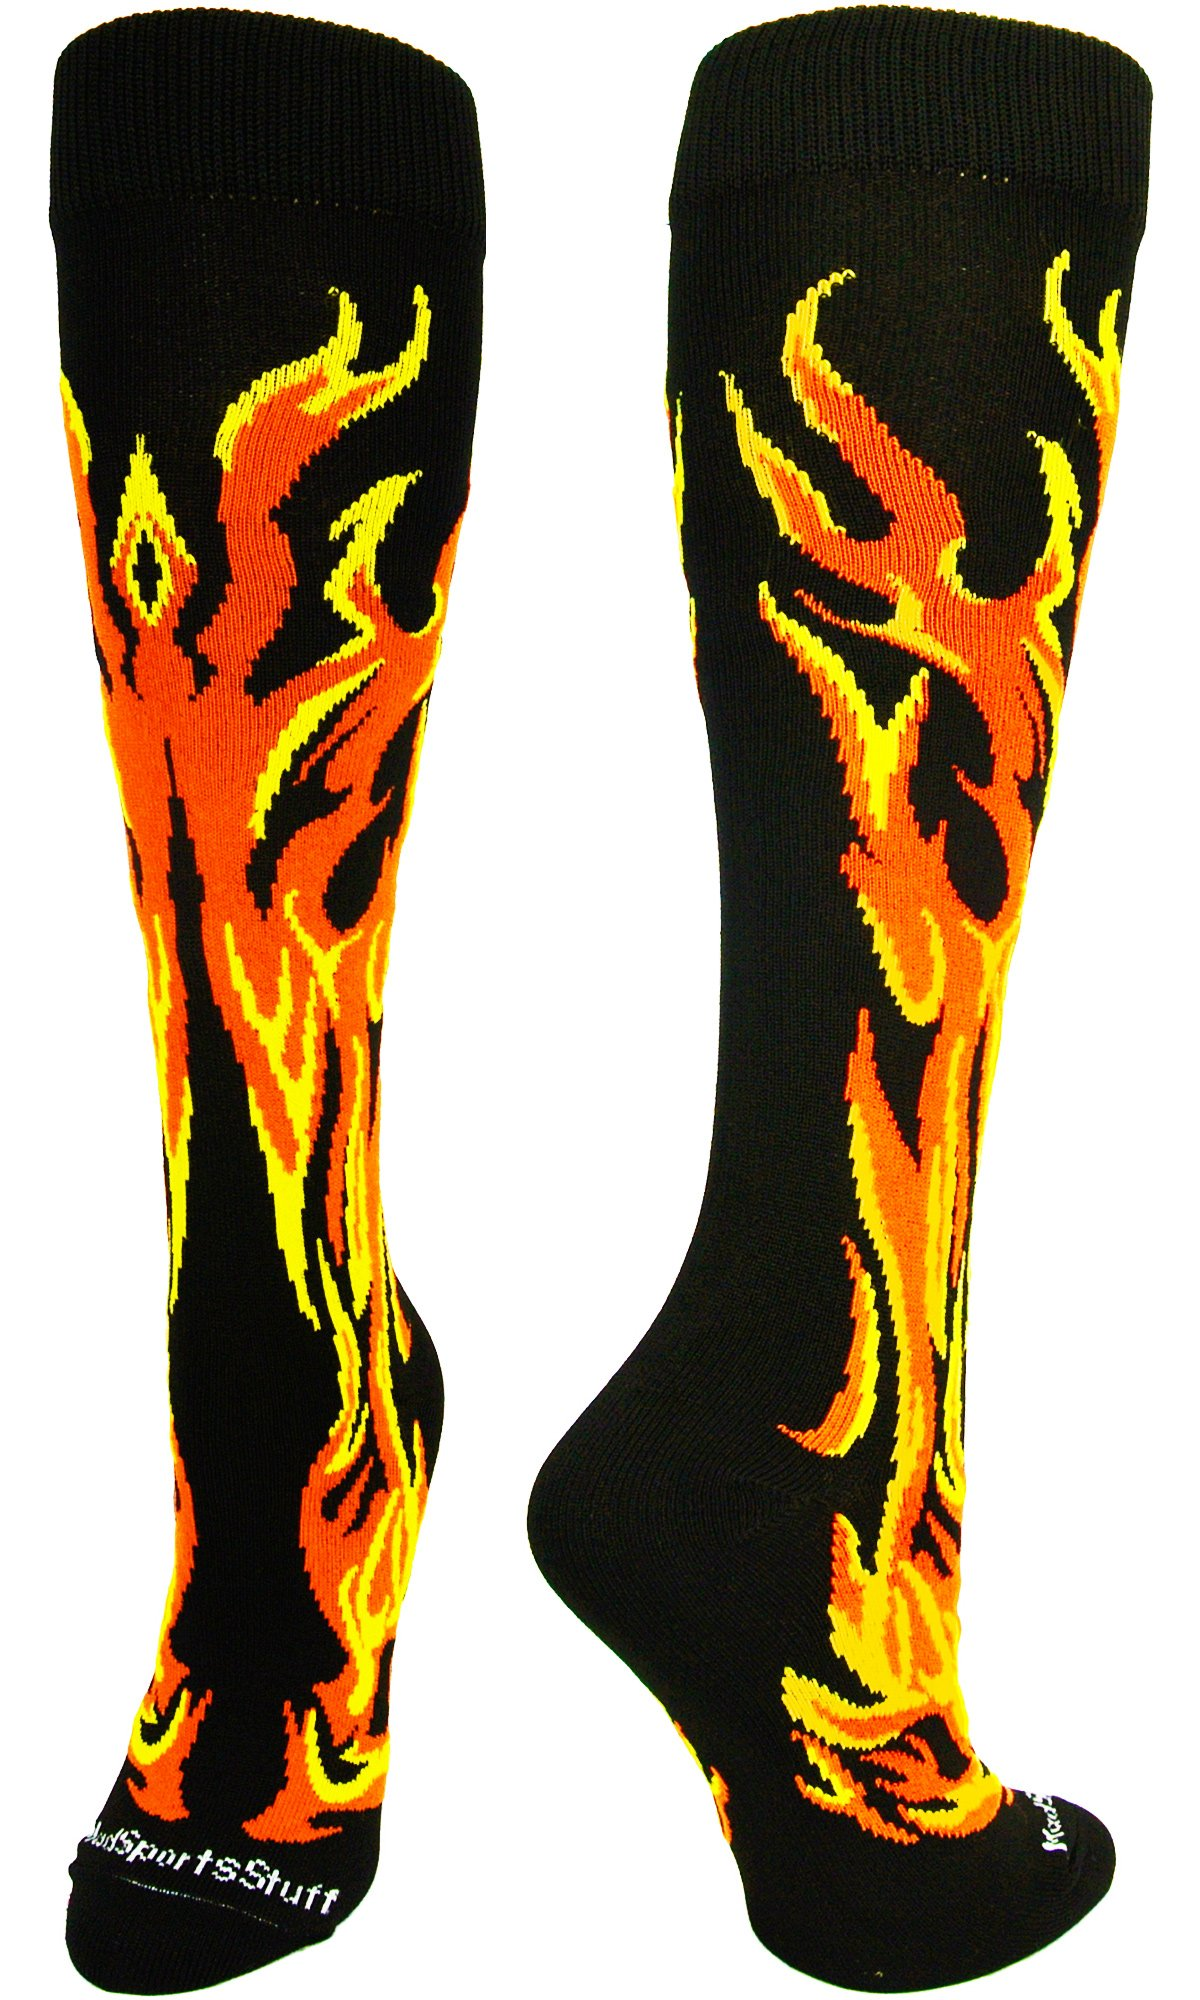 MadSportsStuff Flame Socks Athletic Over the Calf Socks (Black/Orange/Gold, Small) by MadSportsStuff